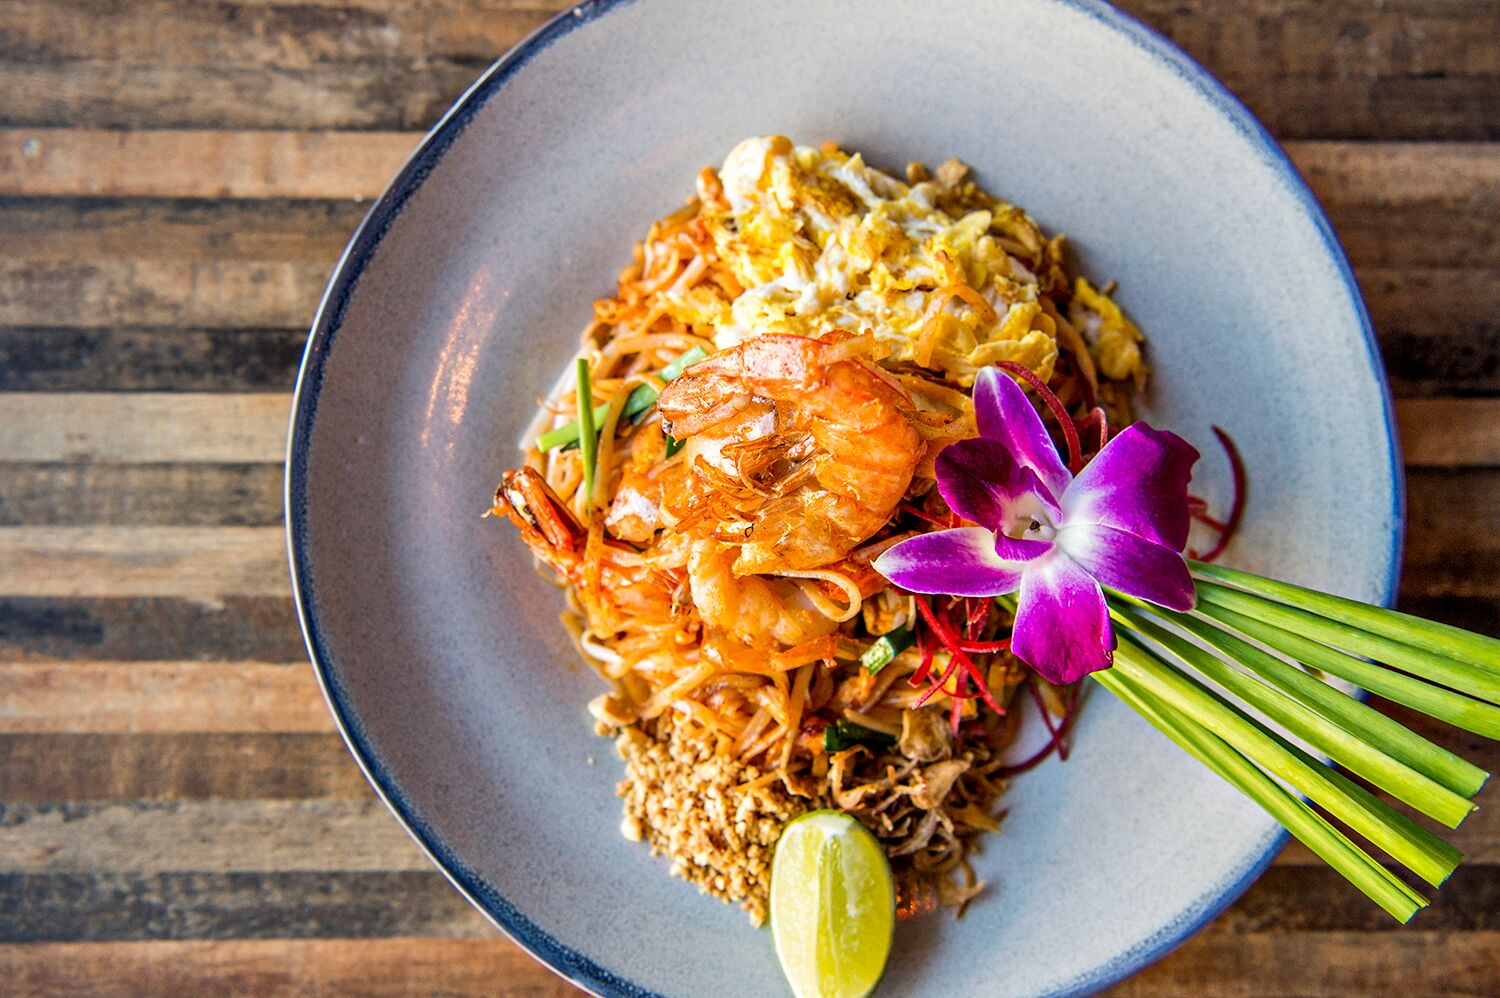 A photo of the Pad Thai Goong with a stir fry of small rice noodles, prawns, bean sprouts, chives and peanuts.